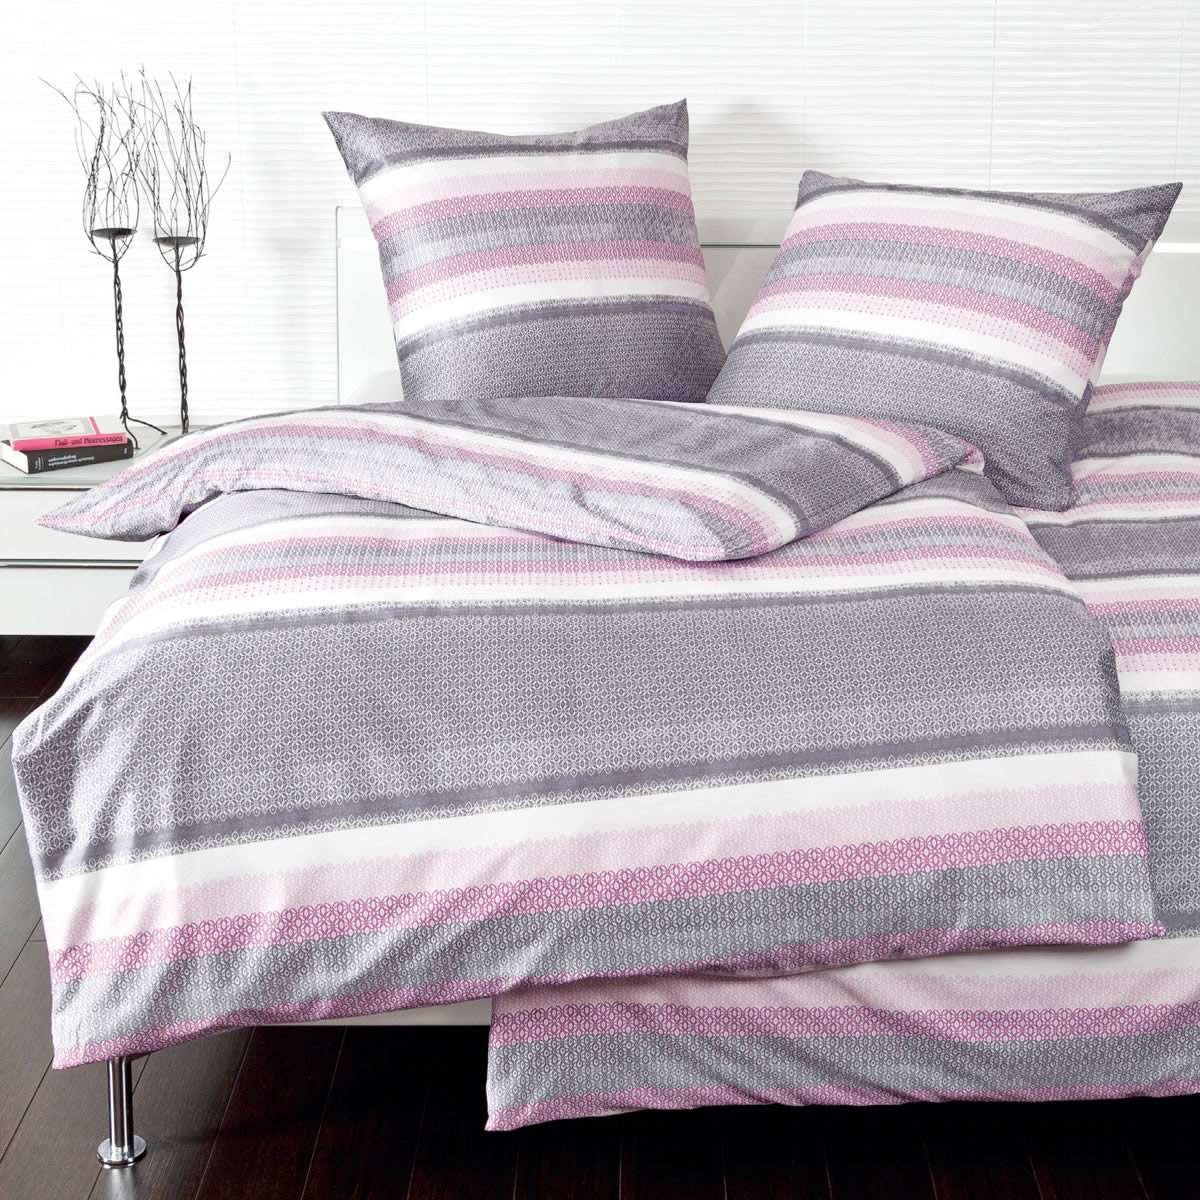 bettw sche pink grau bettw sche bestickt schlafzimmer. Black Bedroom Furniture Sets. Home Design Ideas